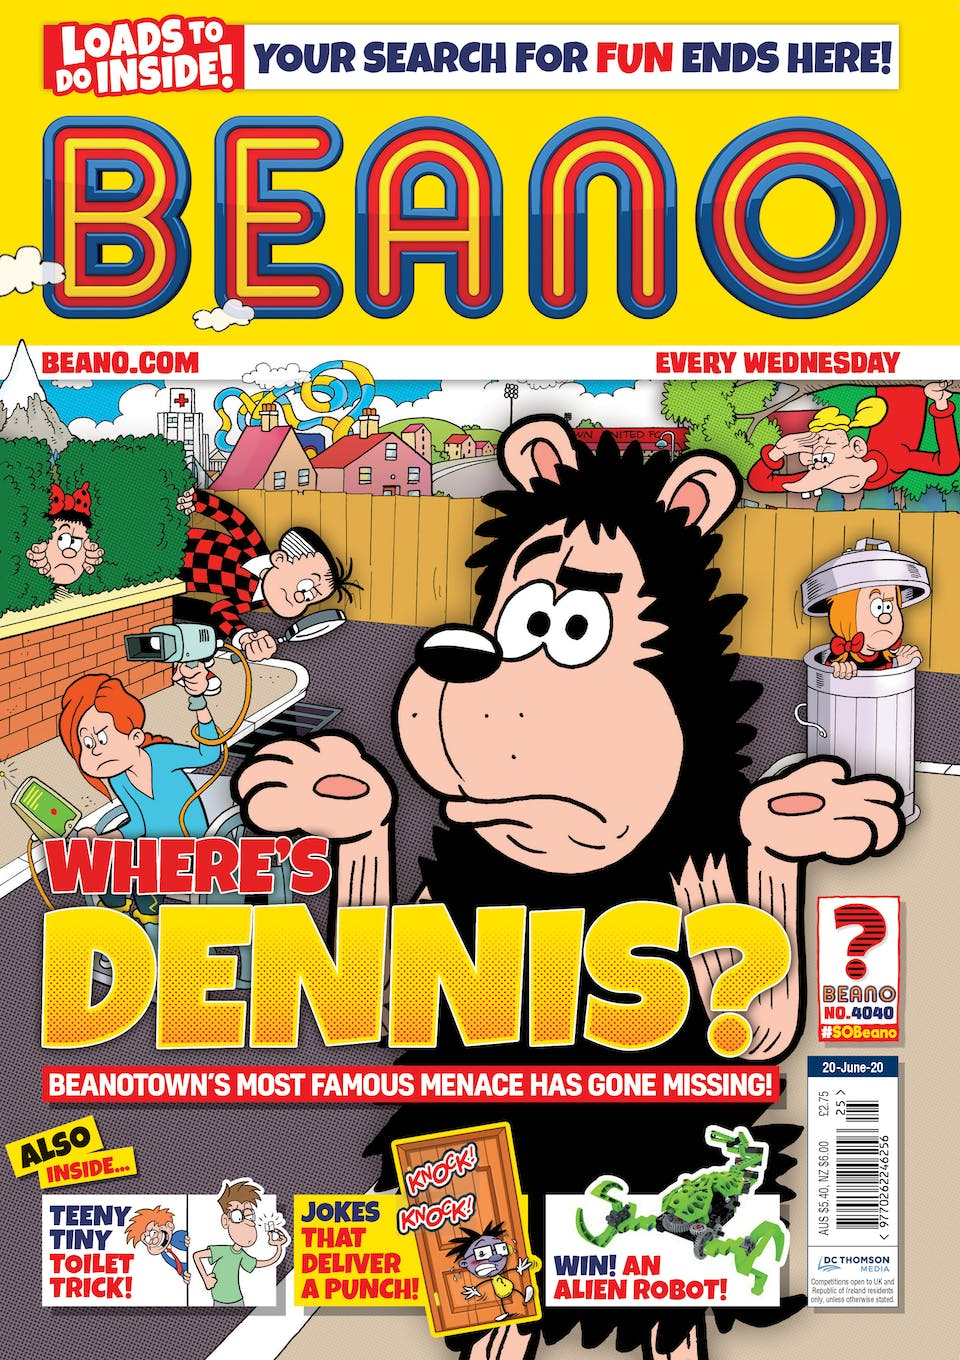 Inside Beano Issue 4040 - Where's Dennis?